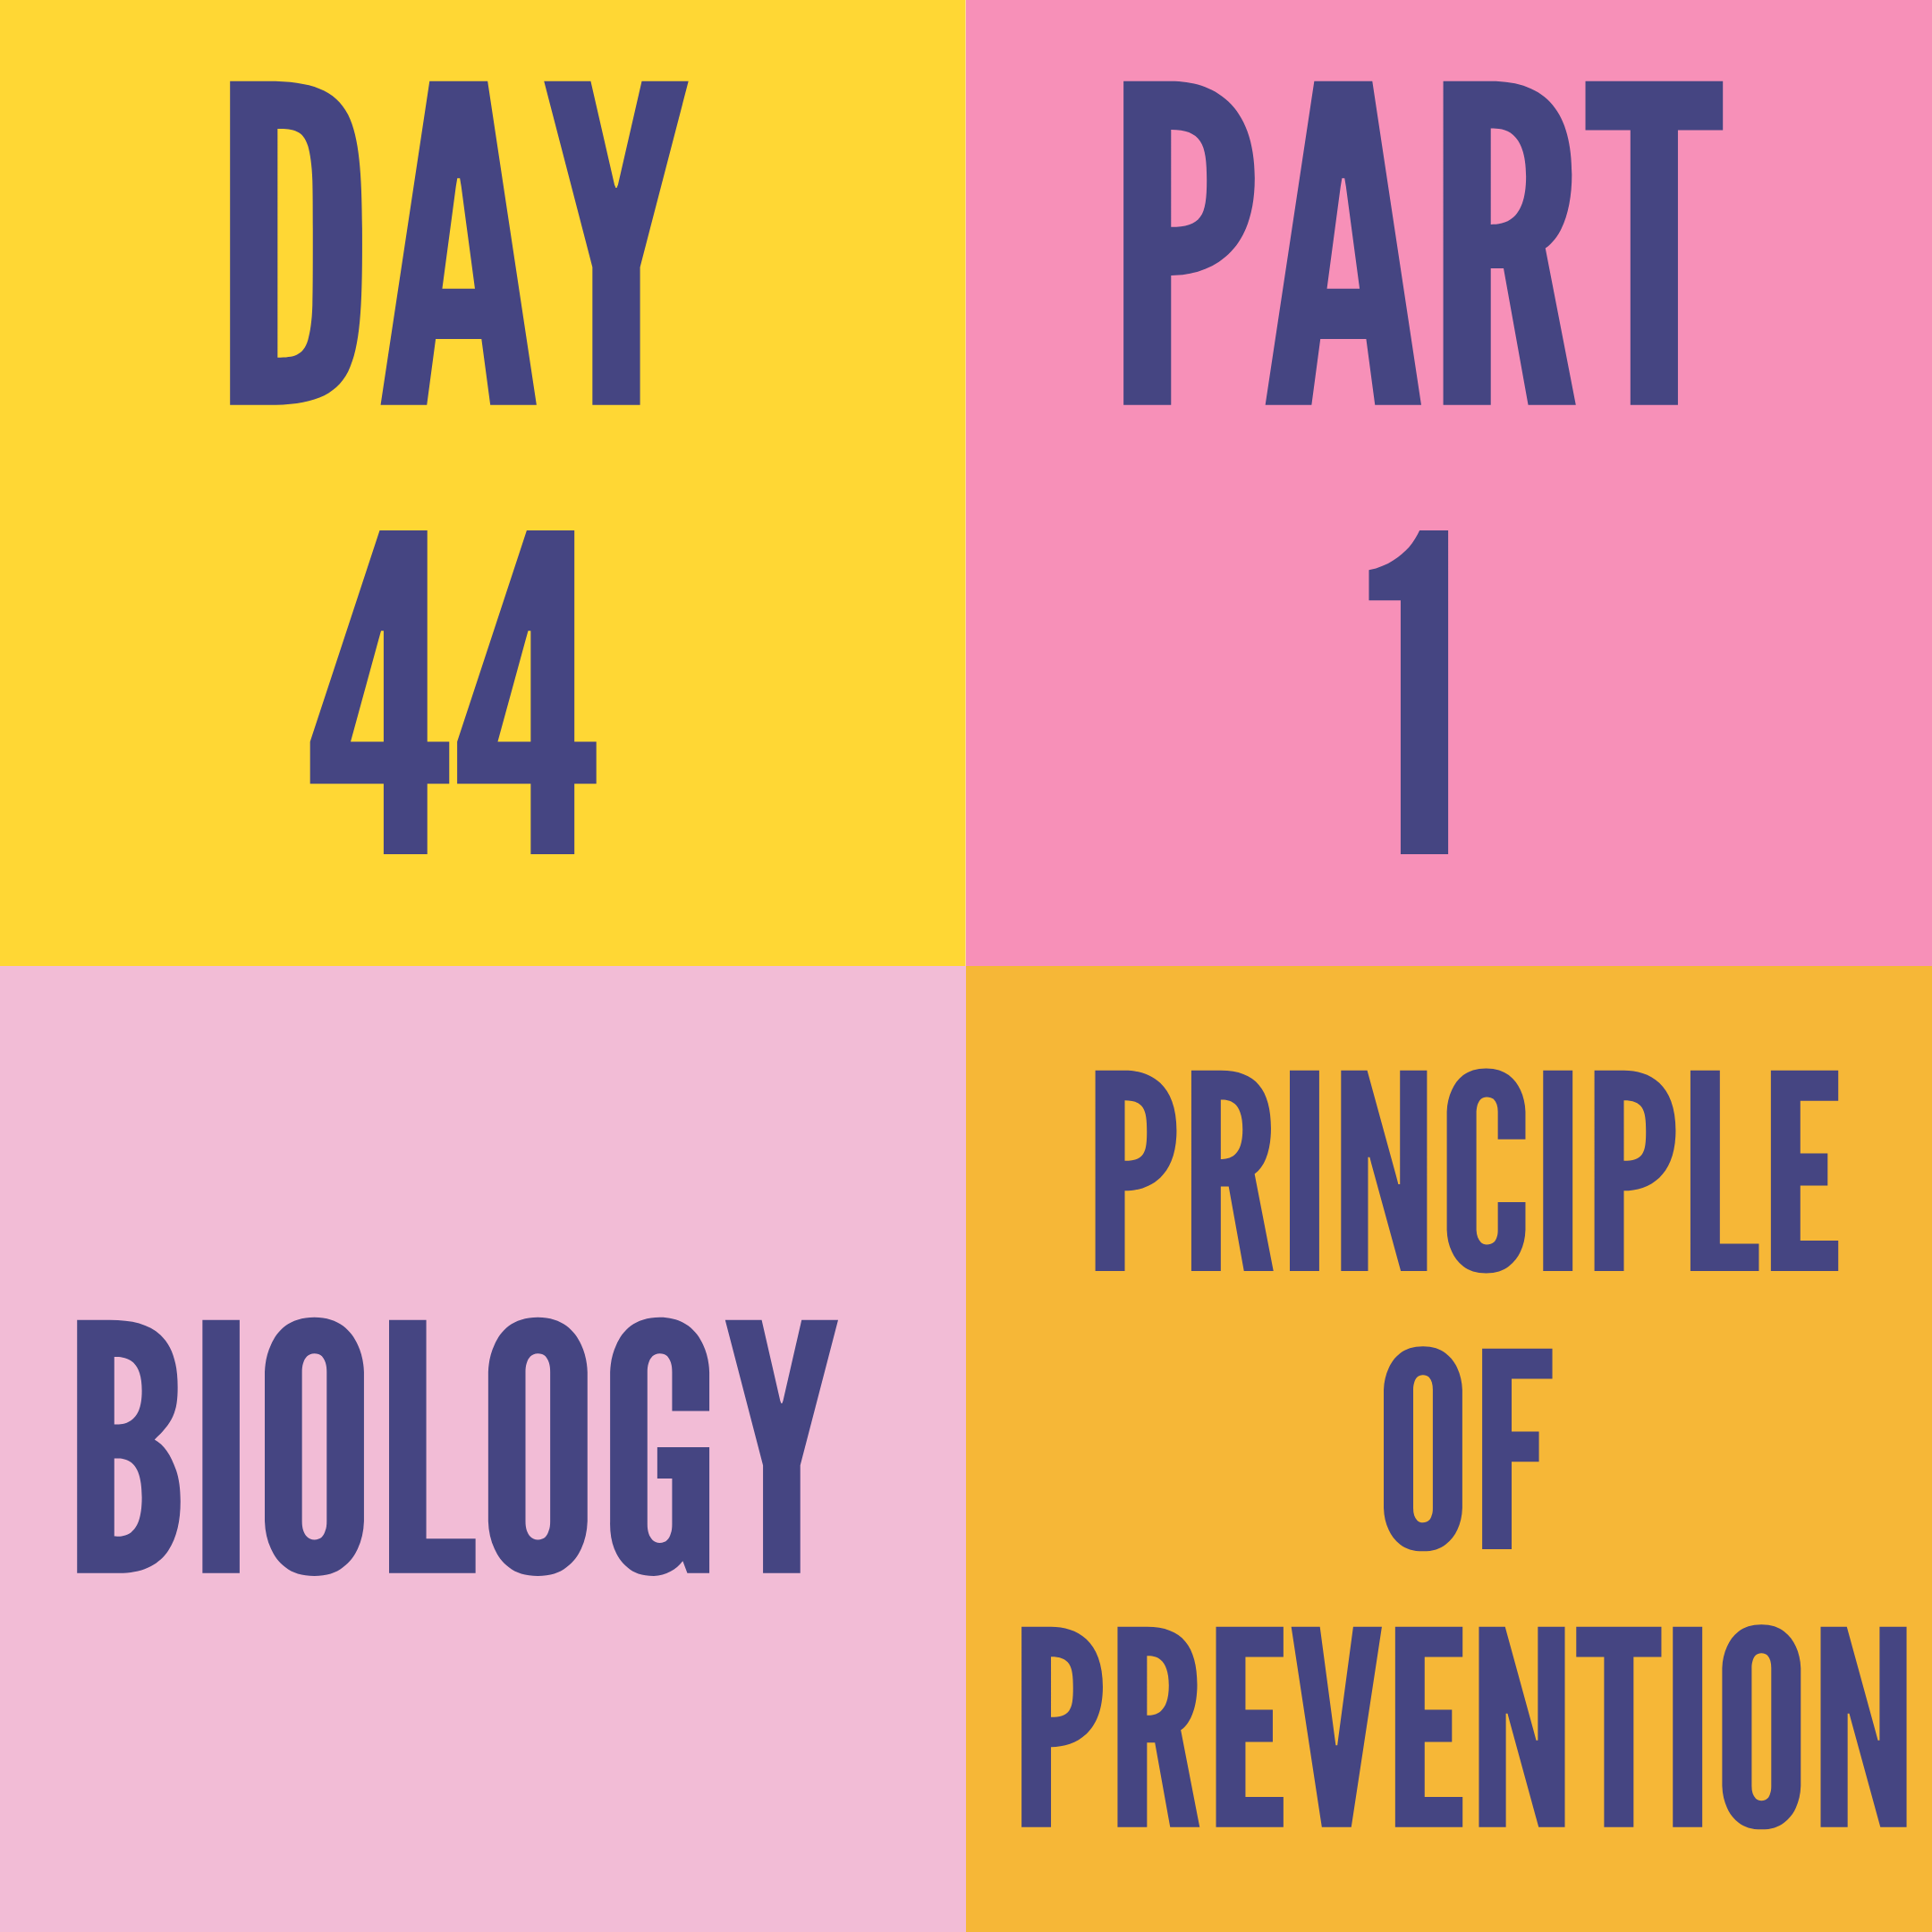 DAY-44 PART-1 PRINCIPLE OF PREVENTION